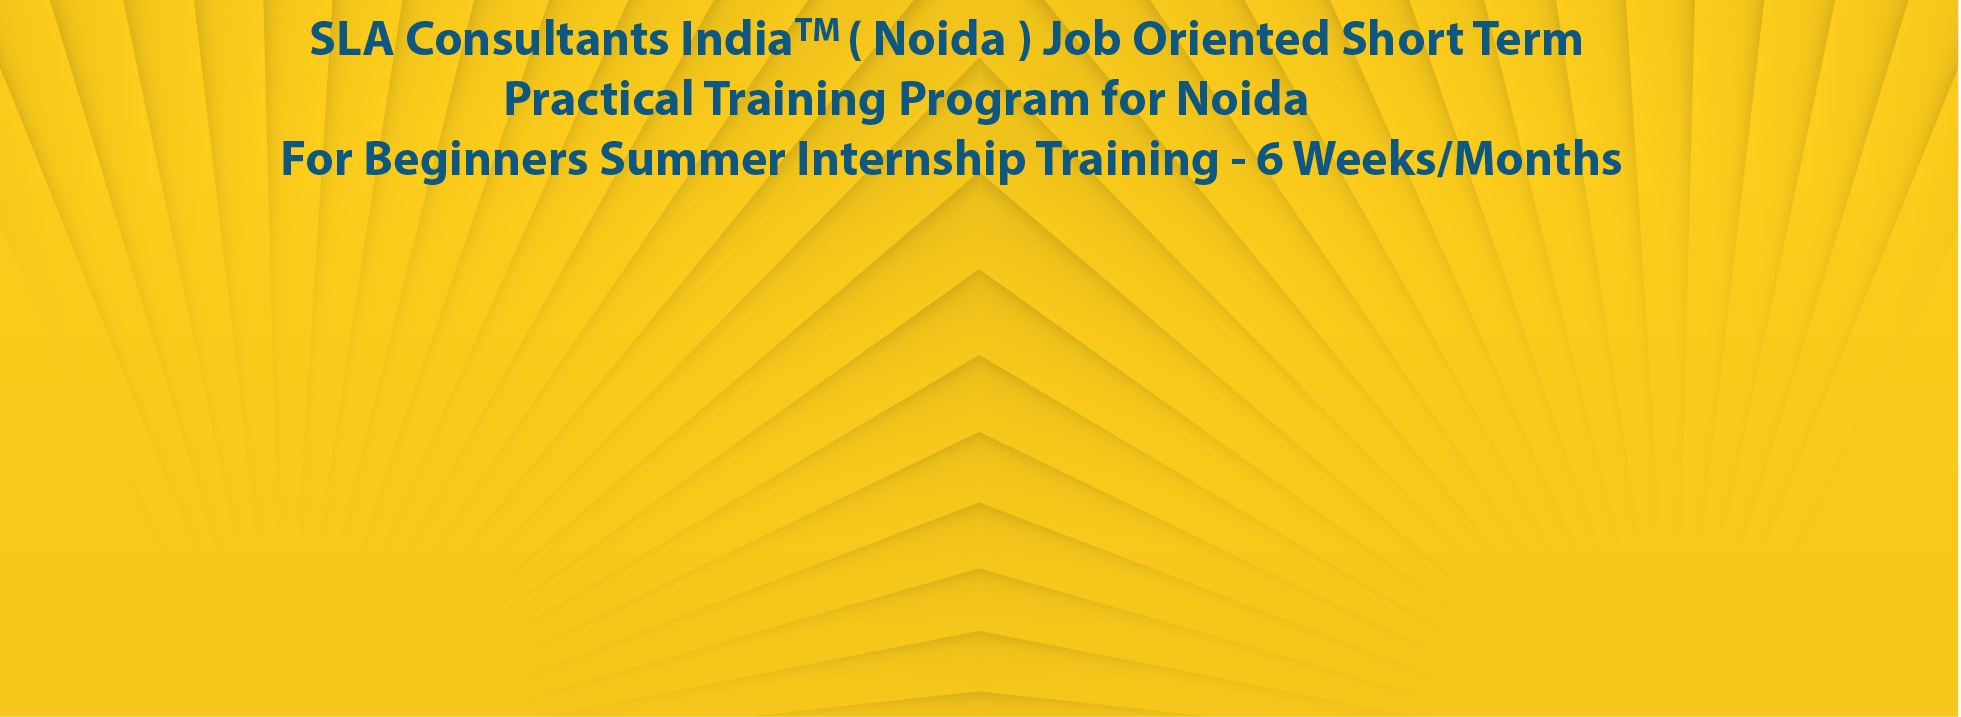 Internship Training courses in noida